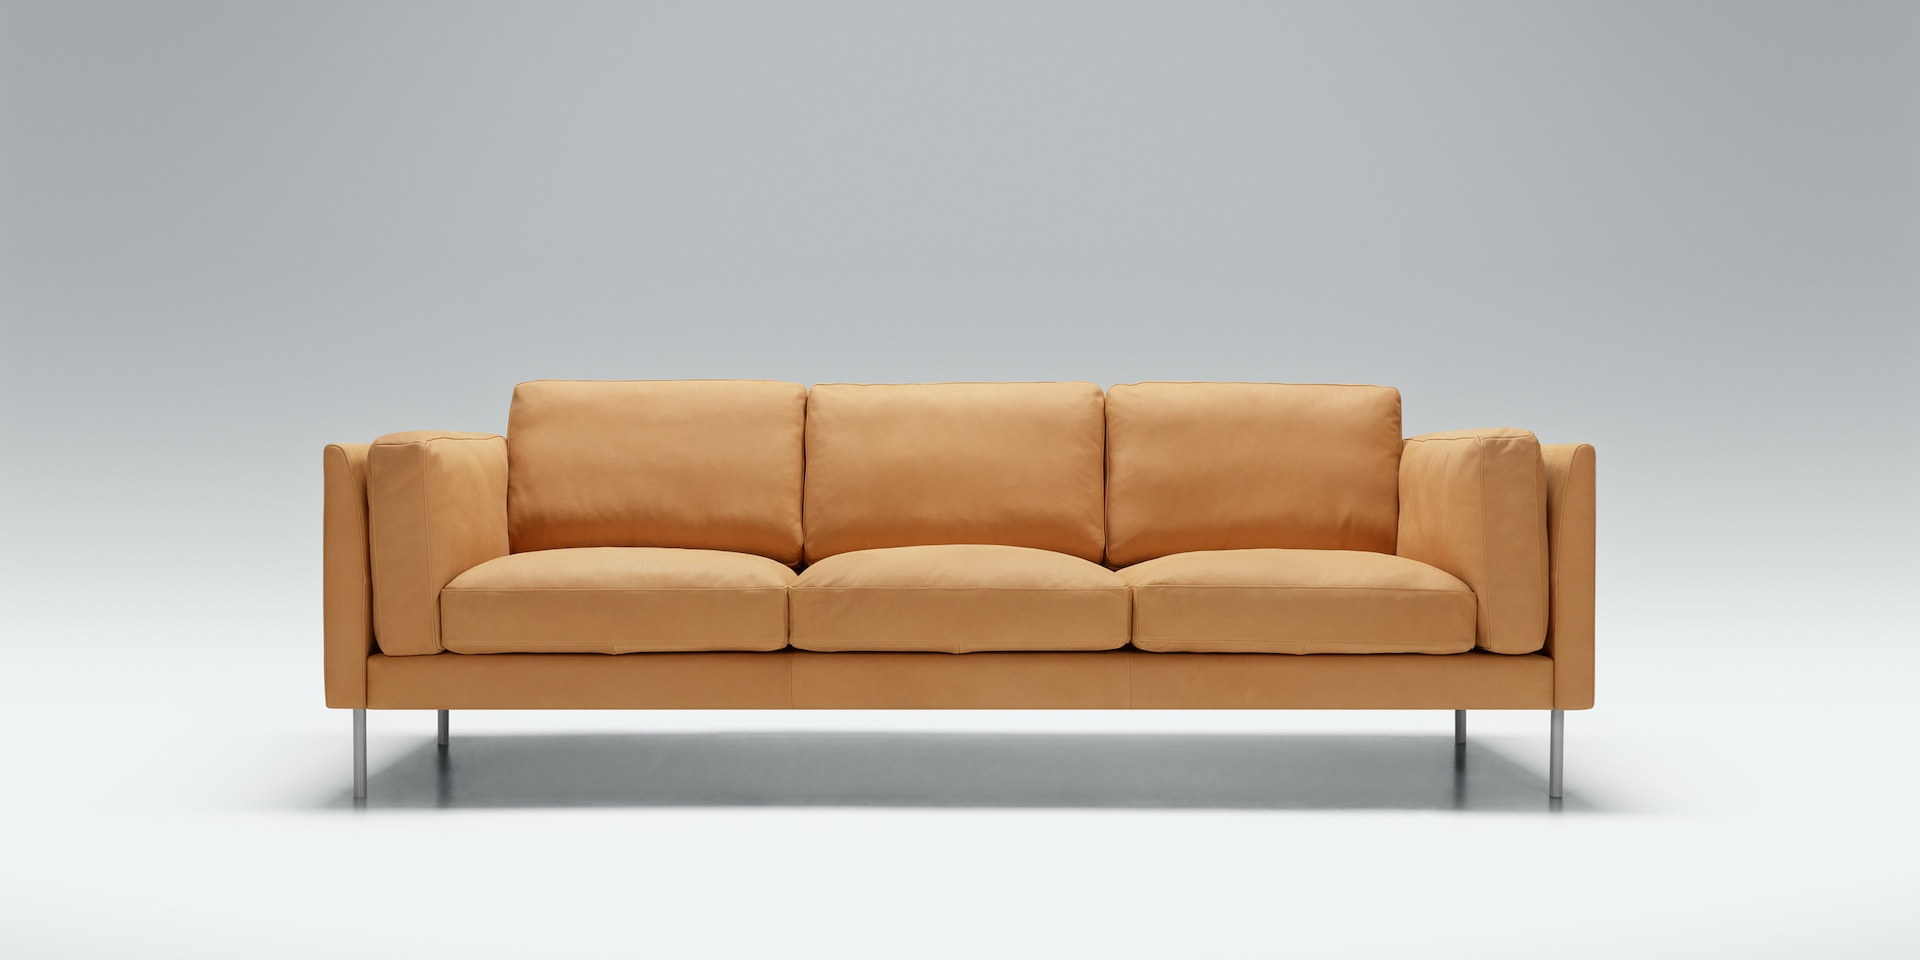 SIGGE_shadow_3,5seater_aniline1_latte_1